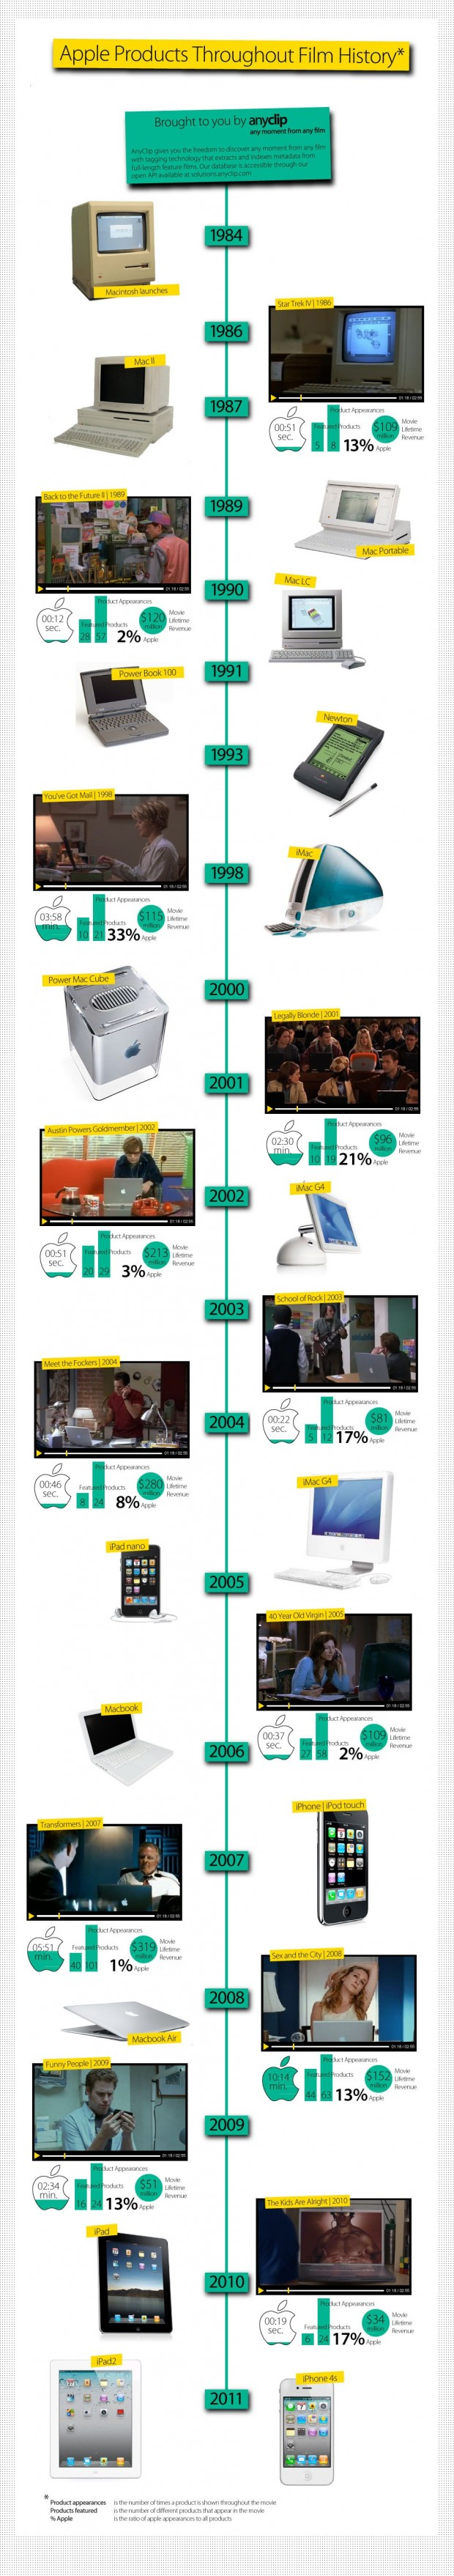 infograficaapple 620x3515 Gli iDevice e i Mac dellAzienda di Cupertino tra le celebrità di Hollywood